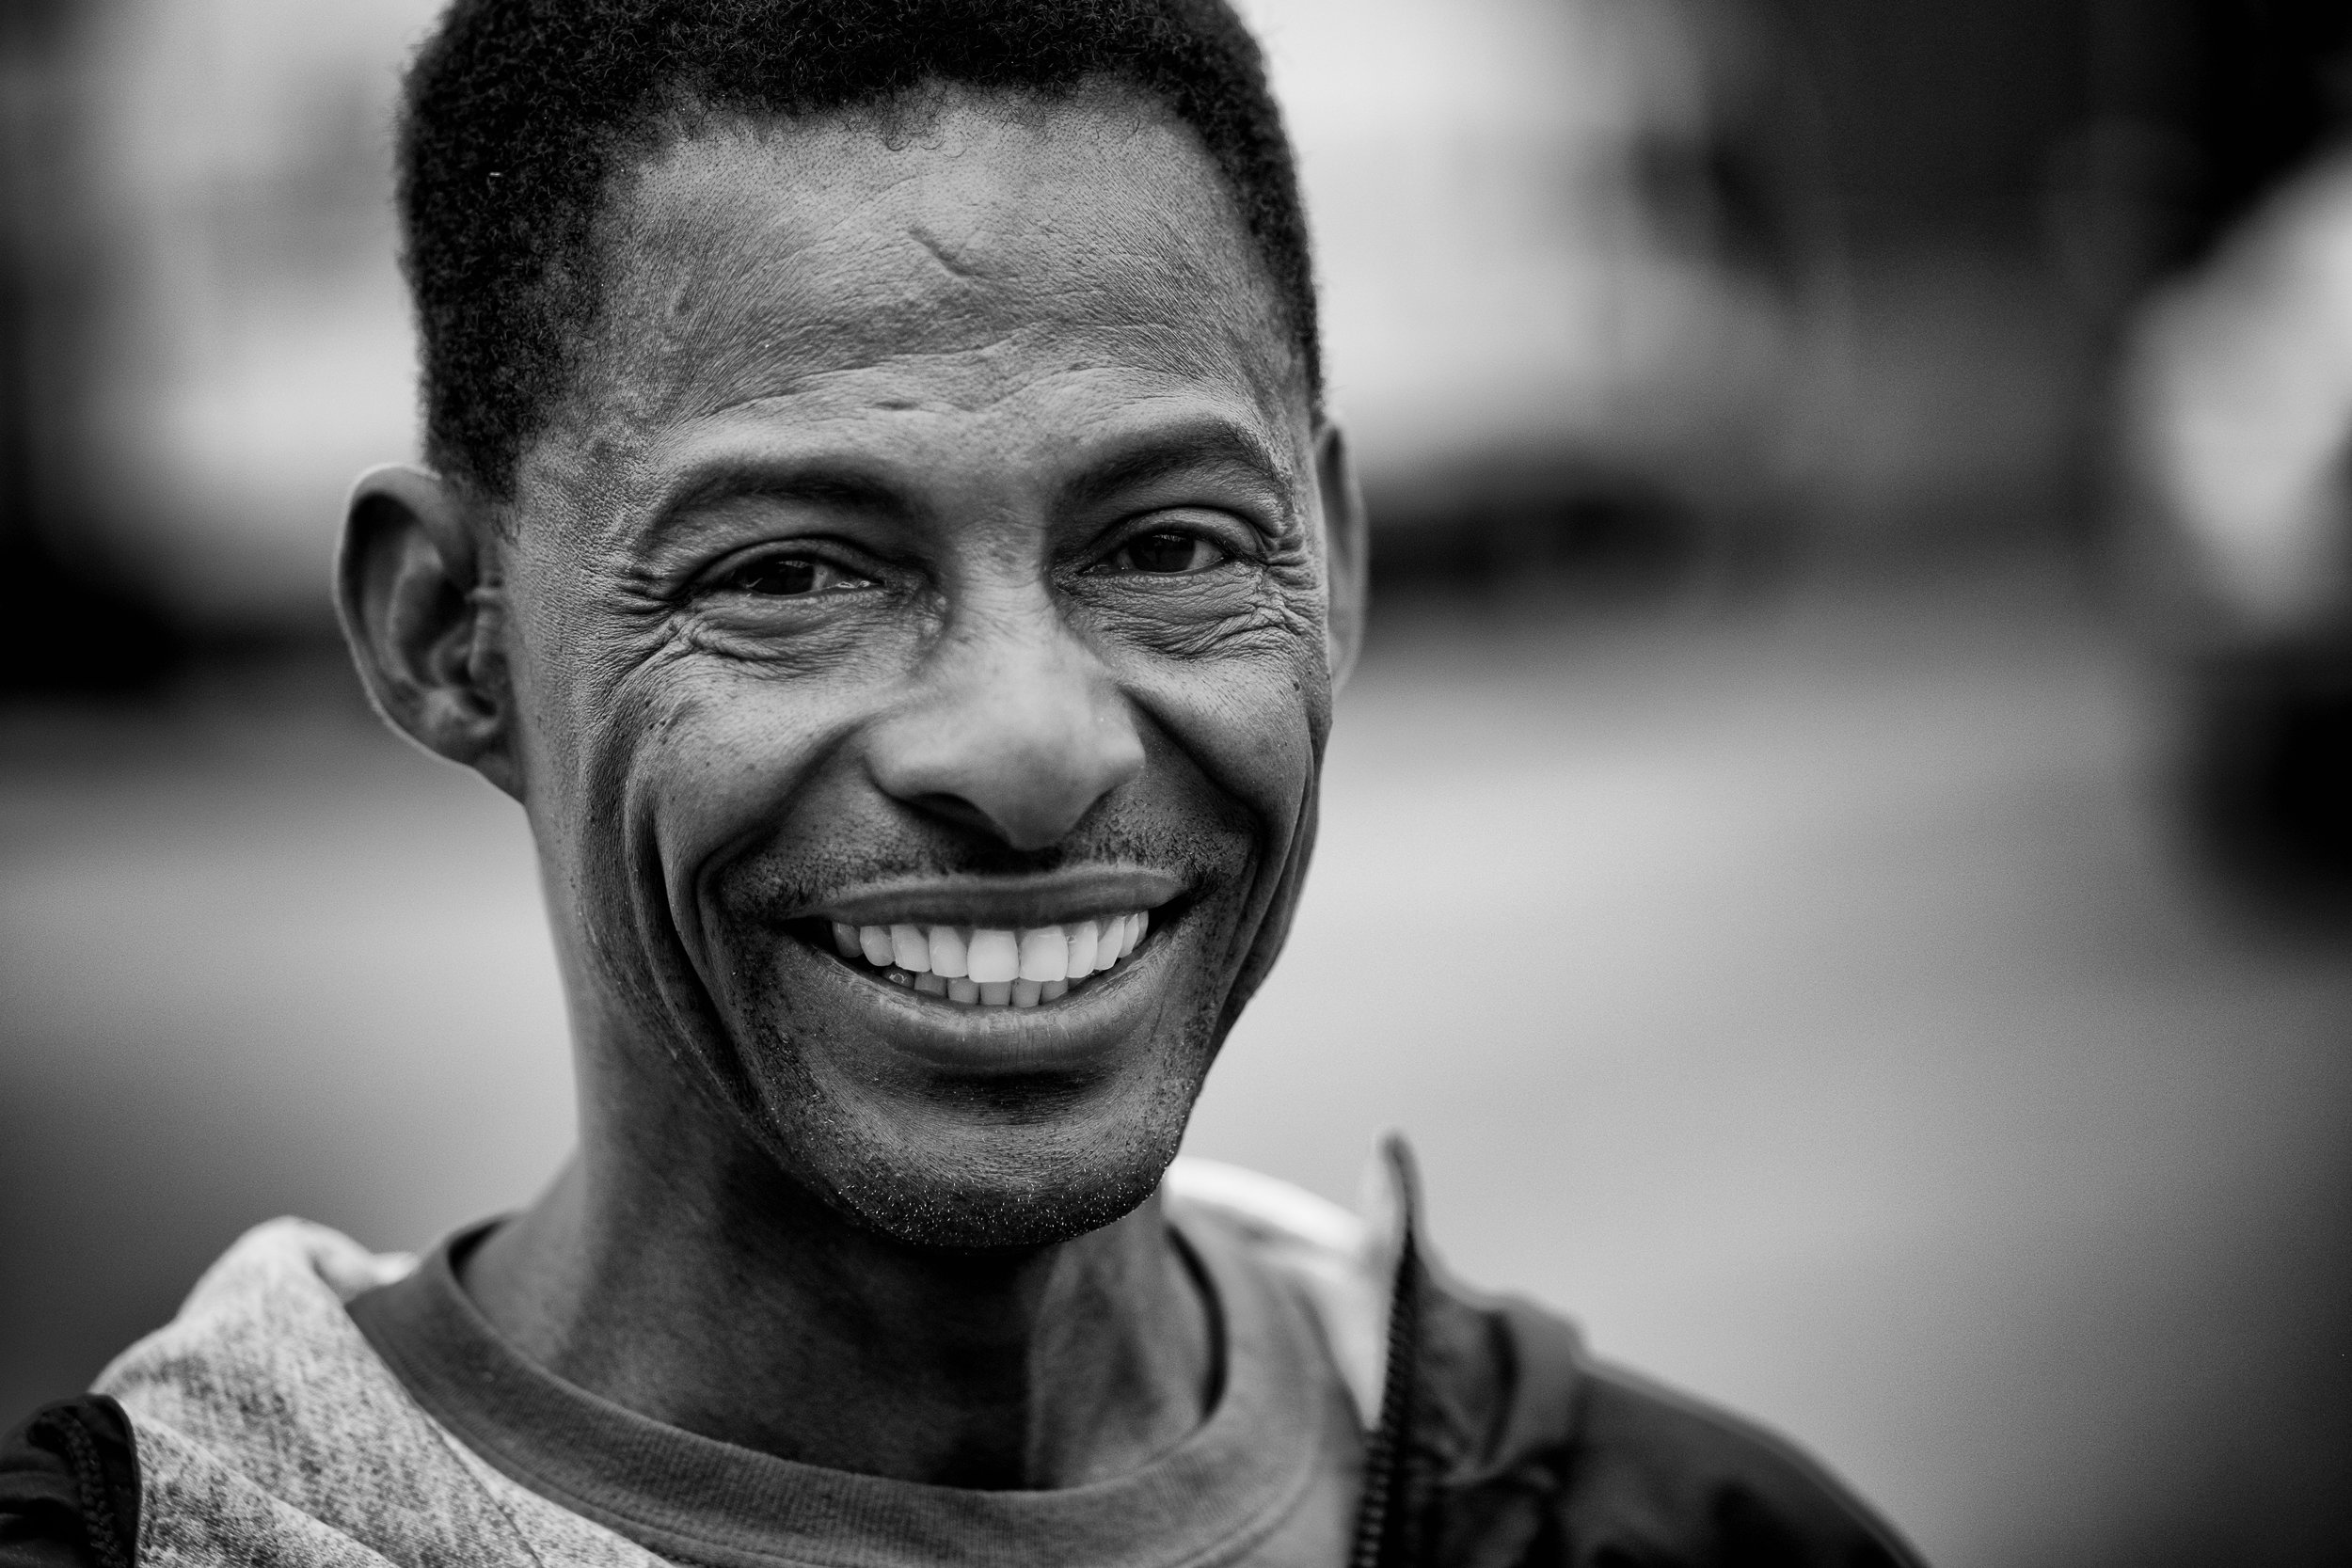 Bertram has been in this industry for many years. He immigrated from Jamaica and now supplies us with his upbeat attitude and large smiles.